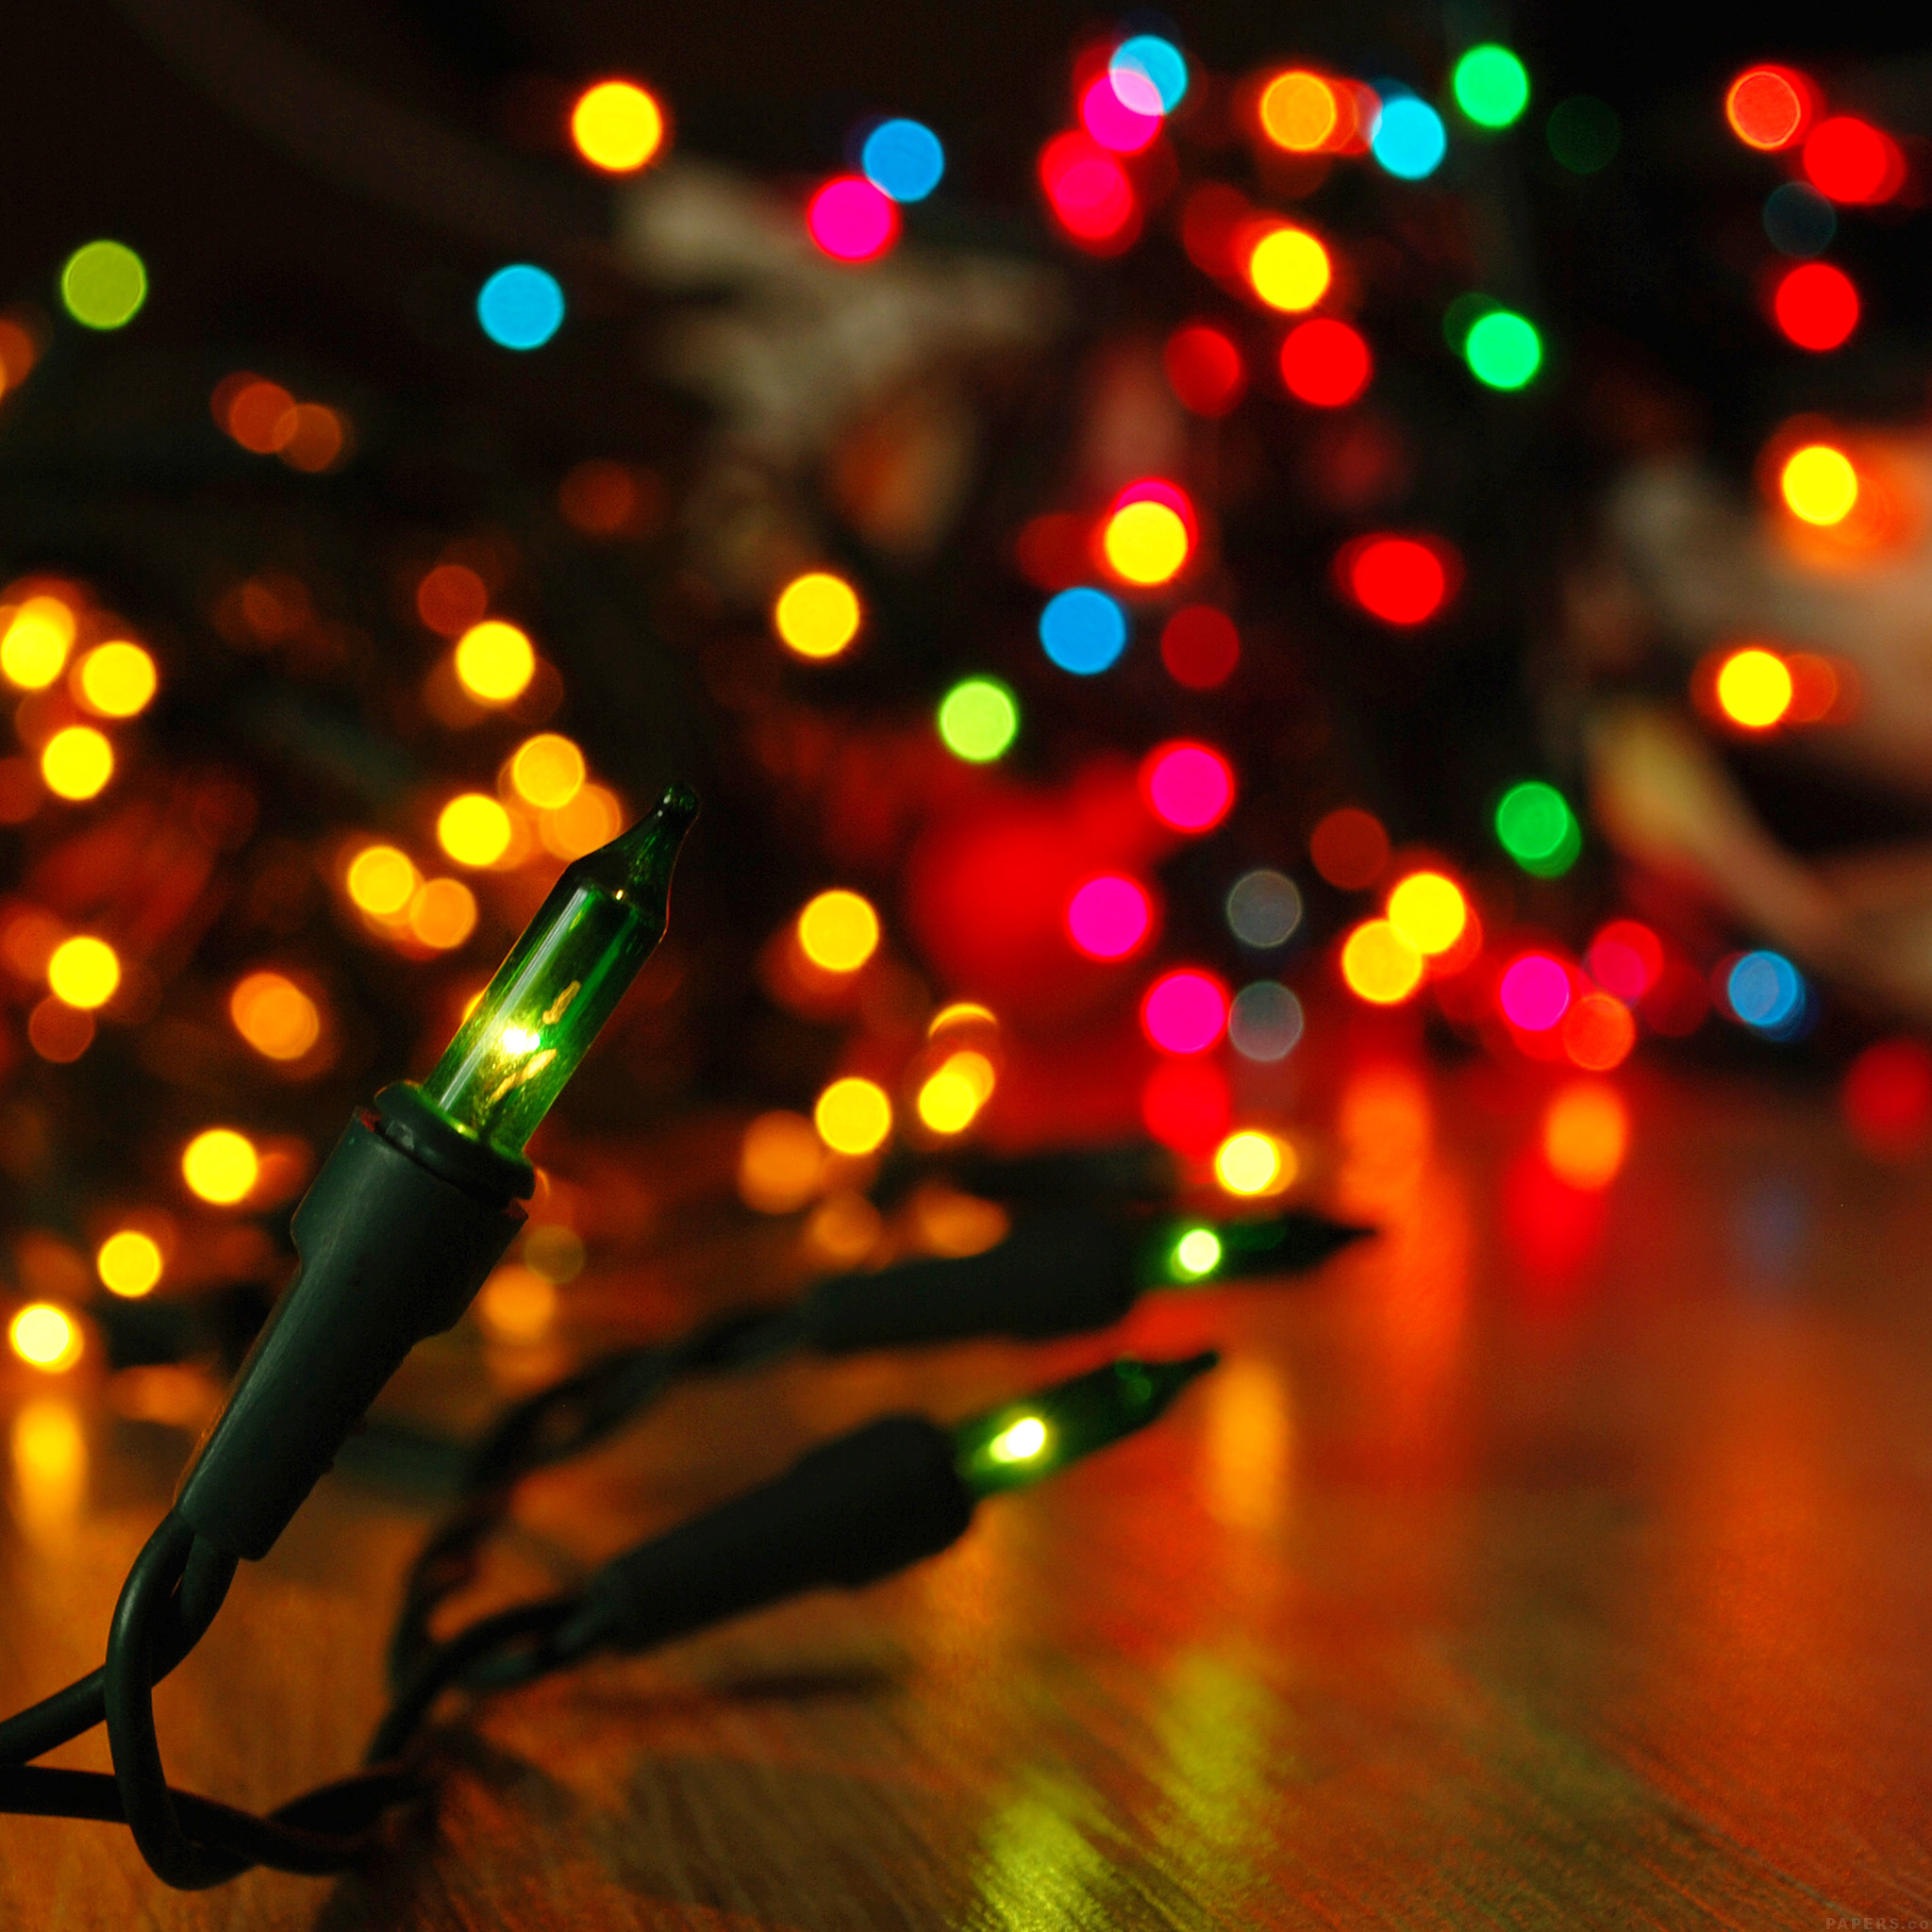 Mj85-christmas-lights-holiday-bokeh